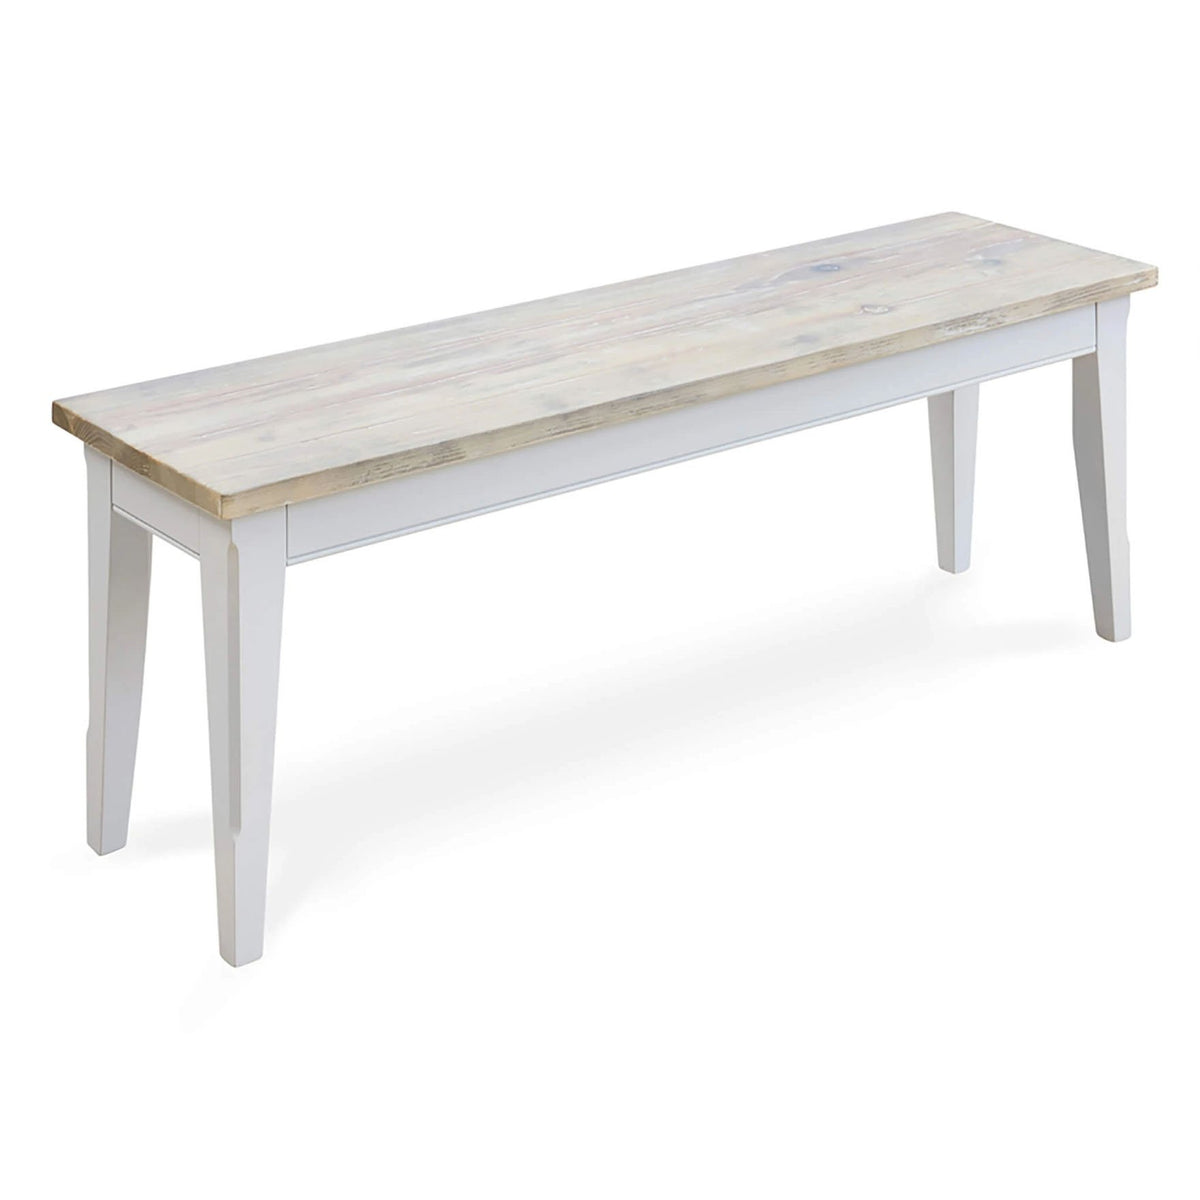 Signature Grey 130cm Dining Bench by Roseland Furniture